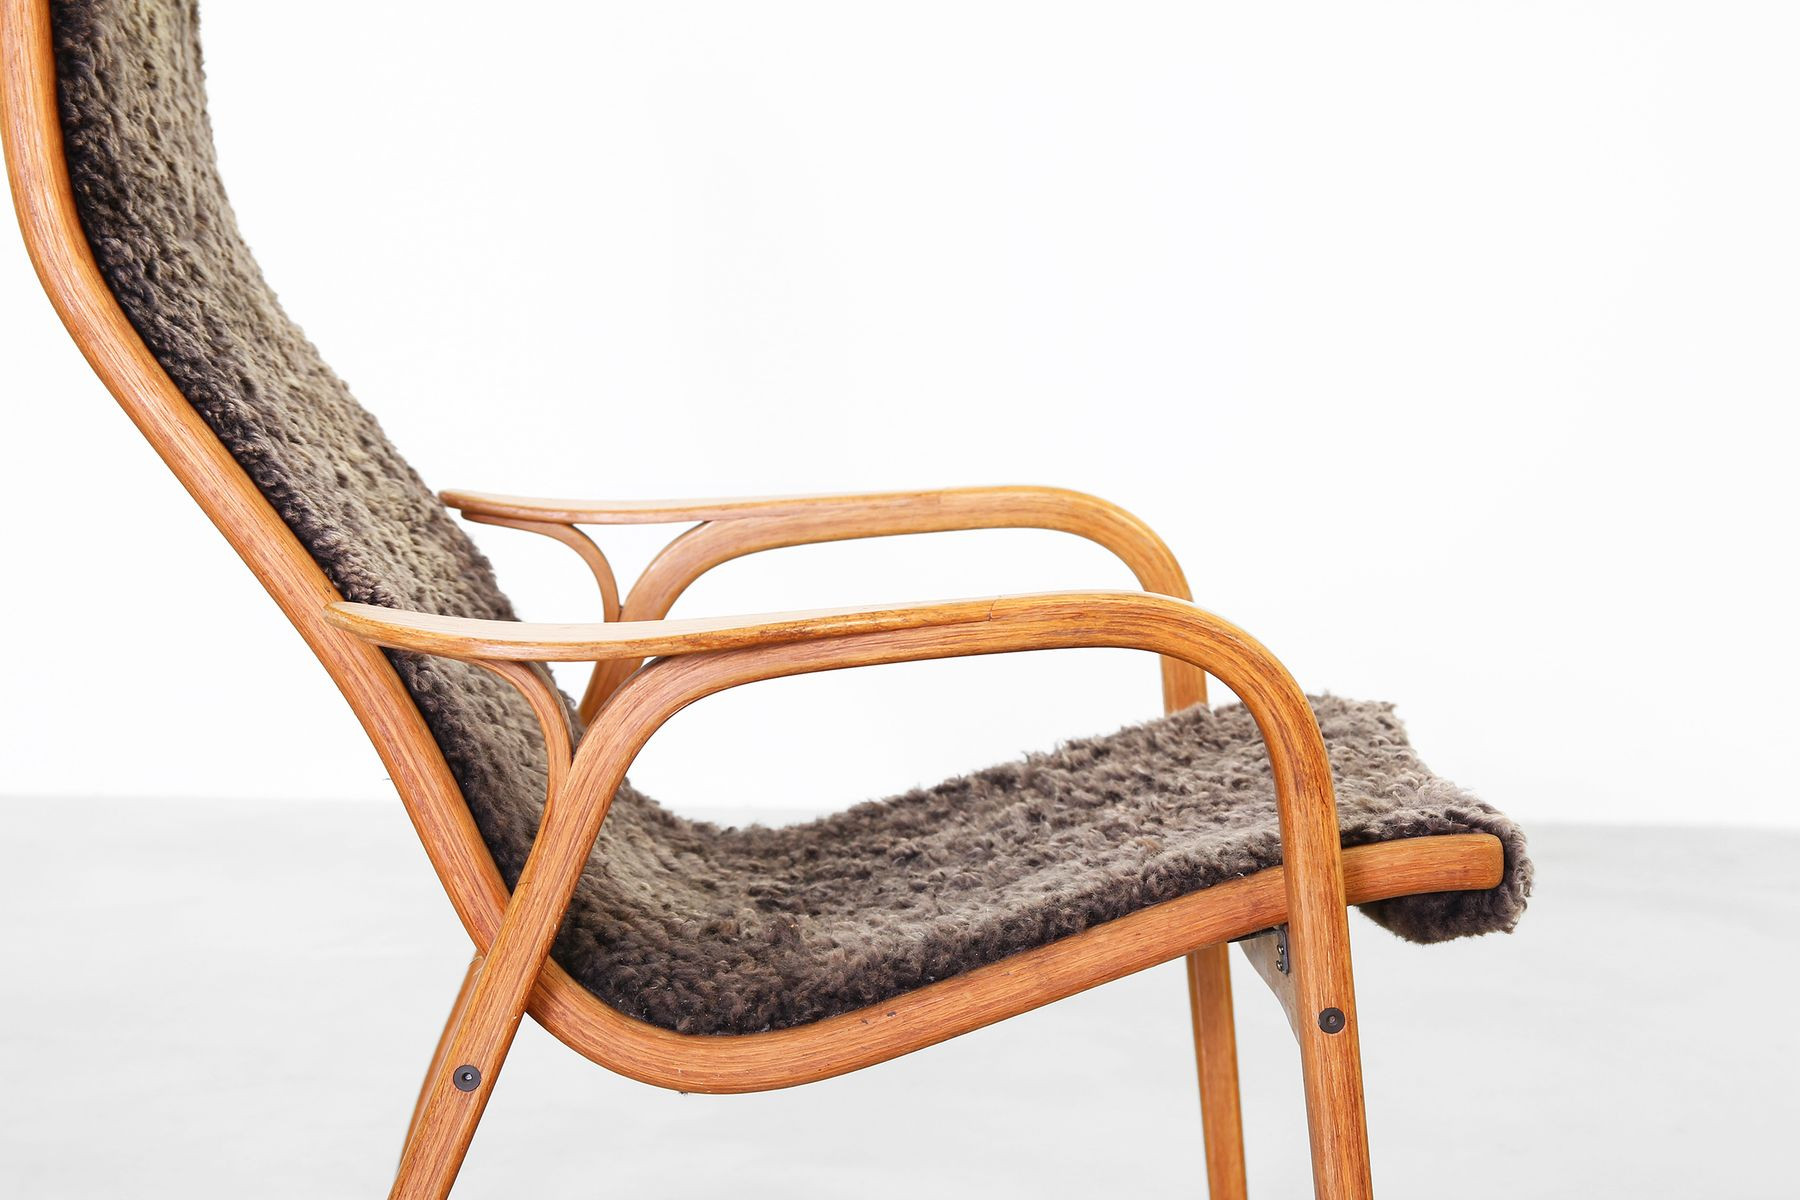 Vintage Swedish Lamino Lounge Chair by Yngve Ekström for Swedese Design, 1960s for sale at Pamono